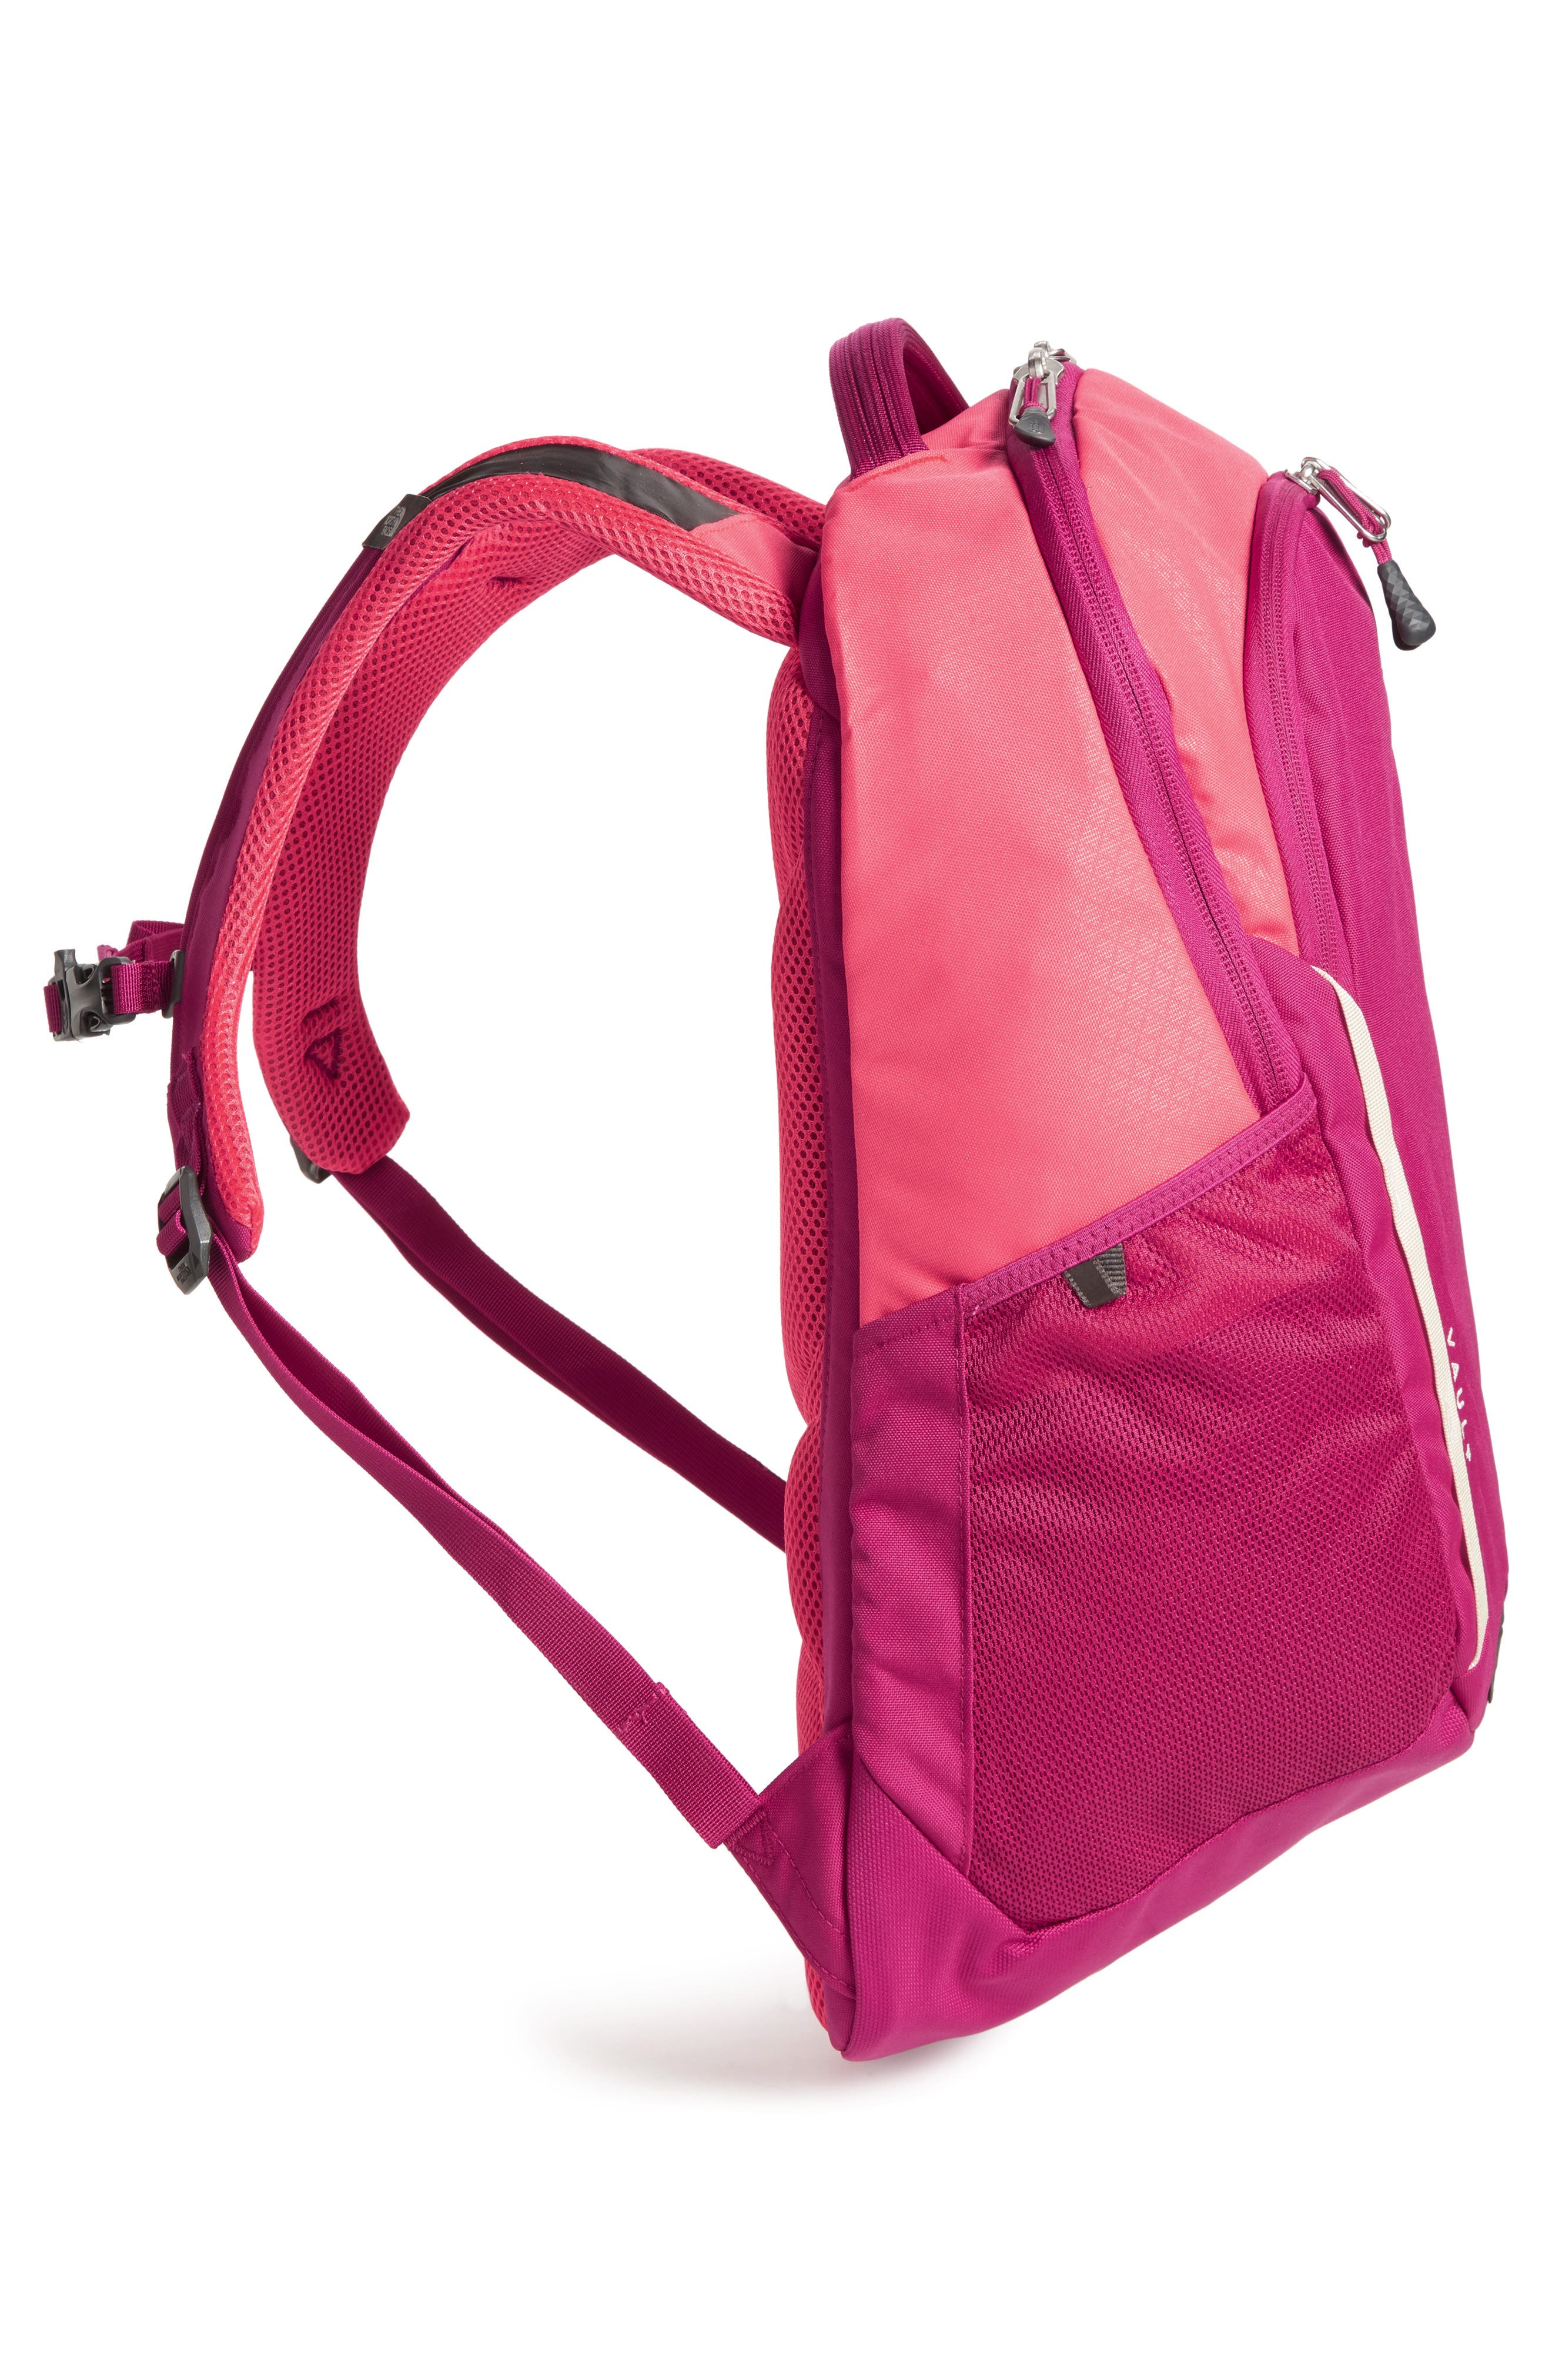 Vault Backpack,                             Alternate thumbnail 4, color,                             ATOMIC PINK/ DRAMATIC PLUM